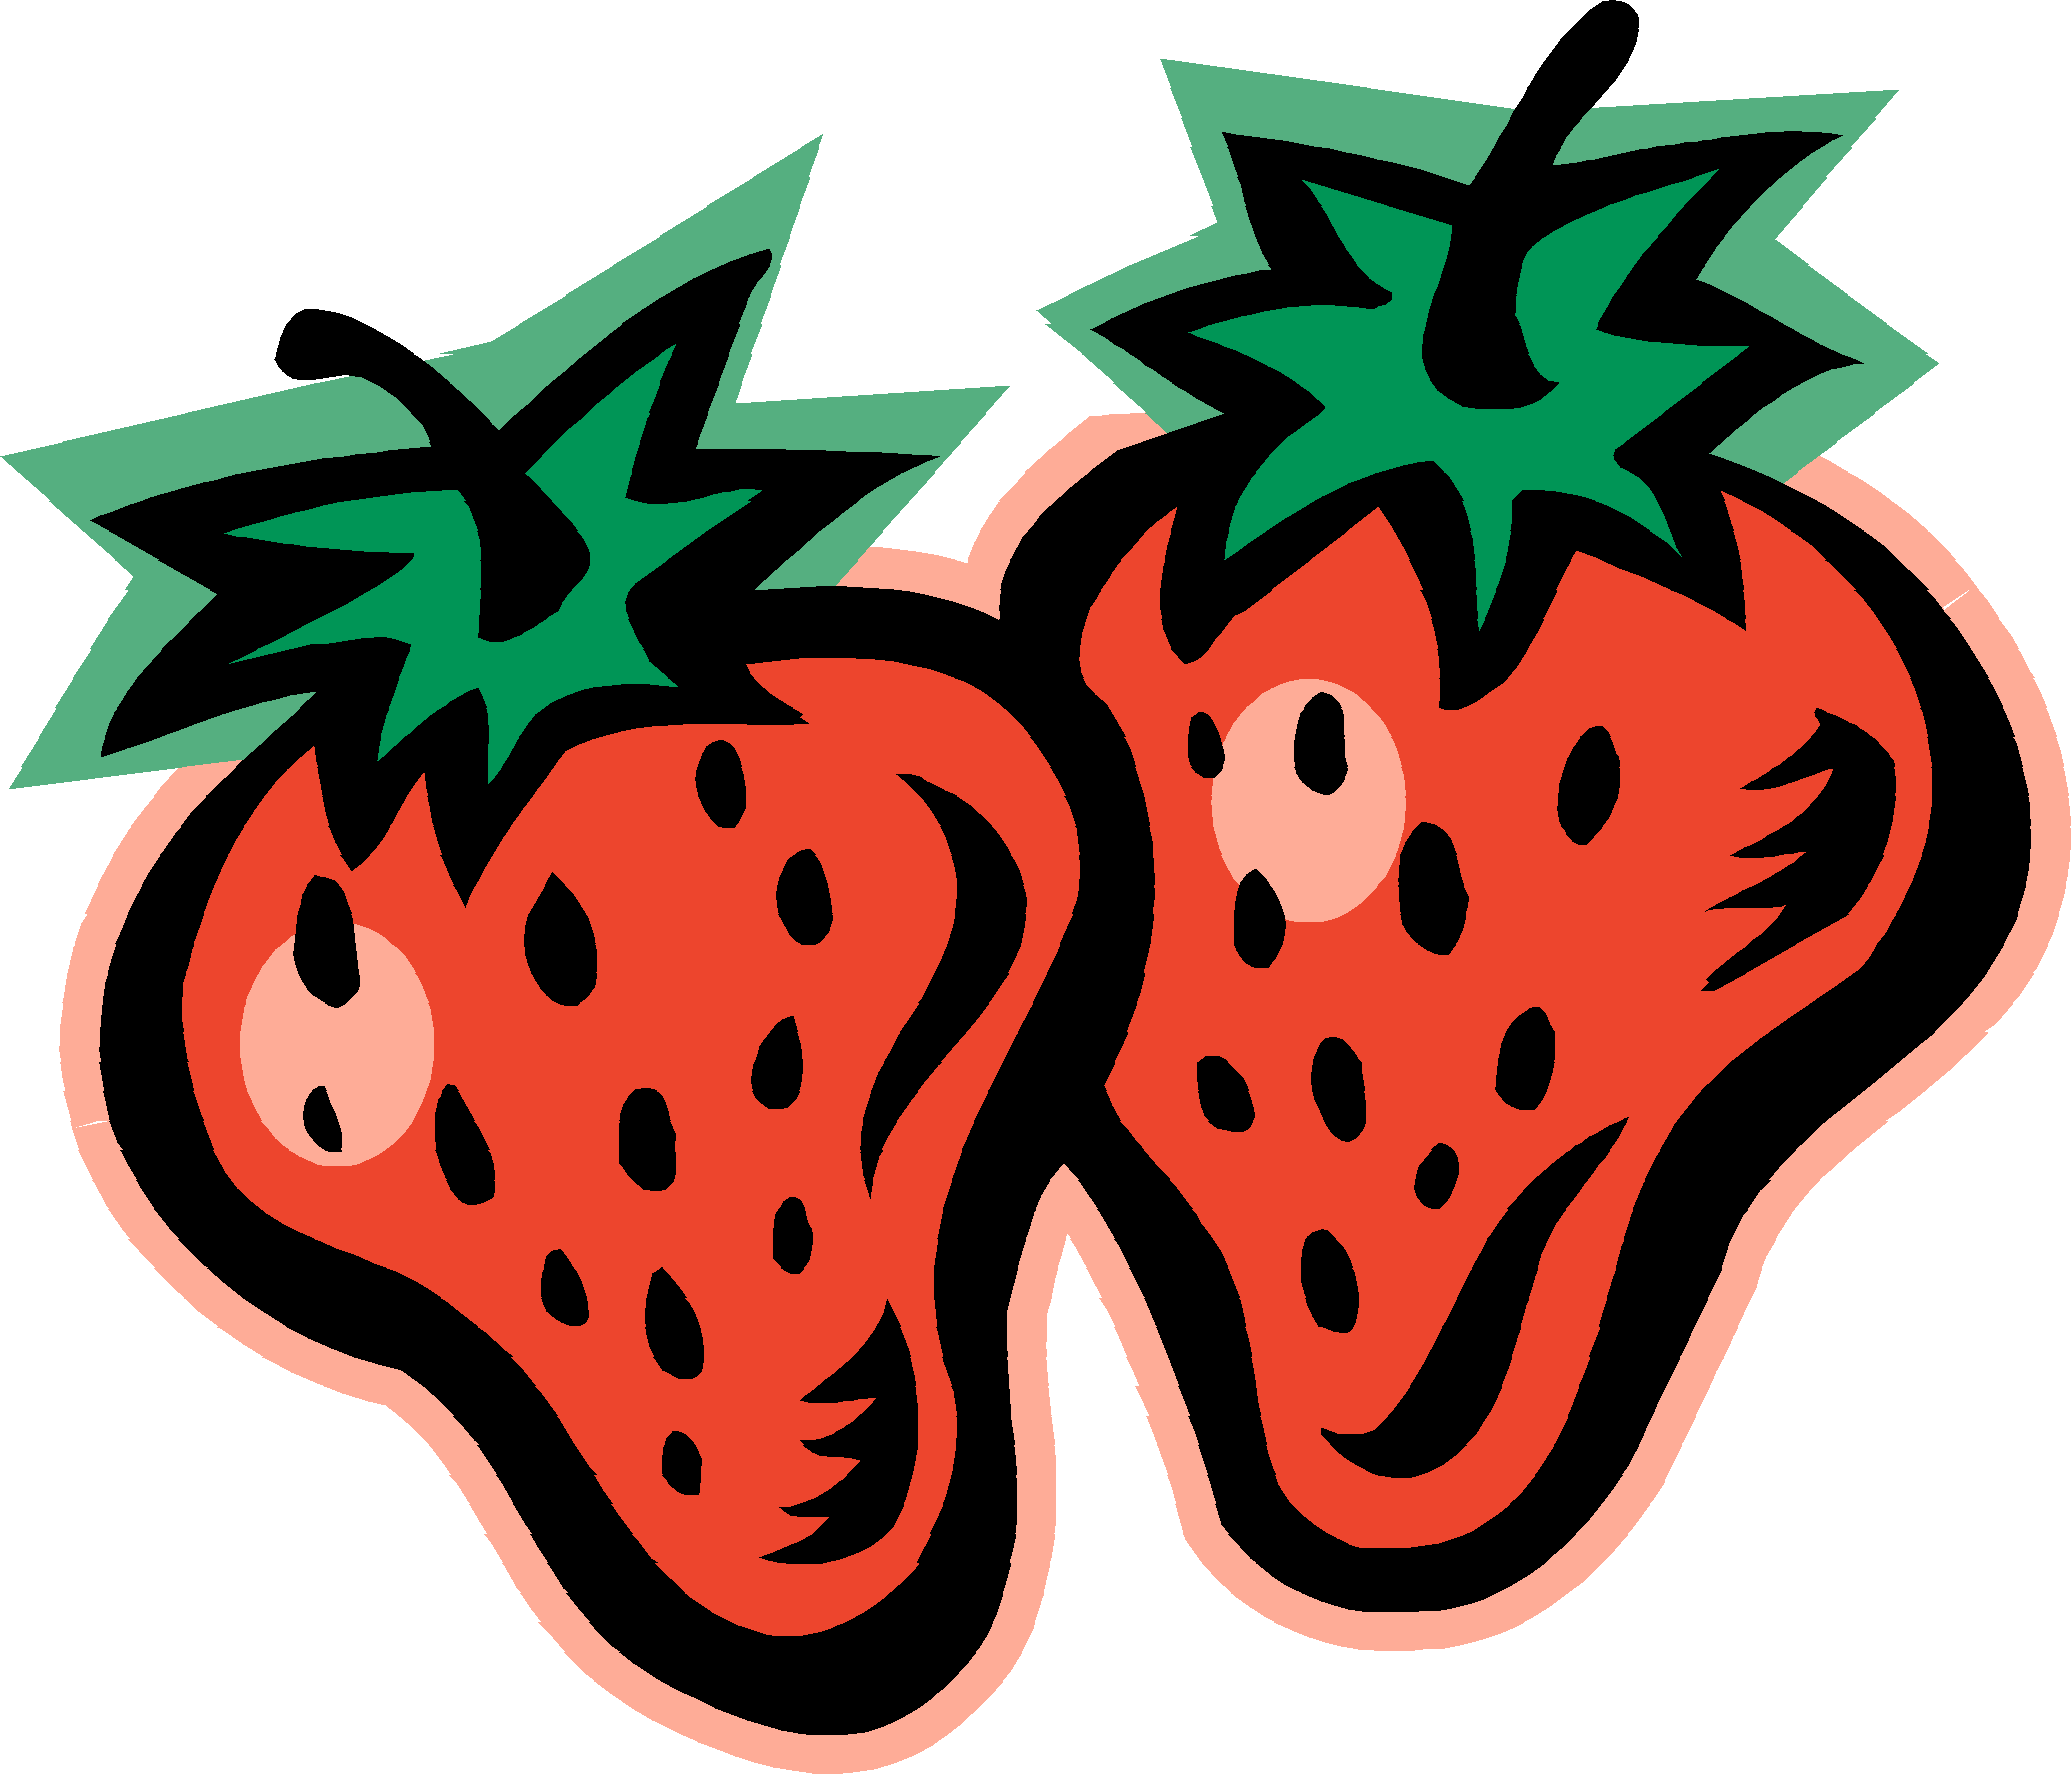 Strawberry black and white. Blueberry clipart pile